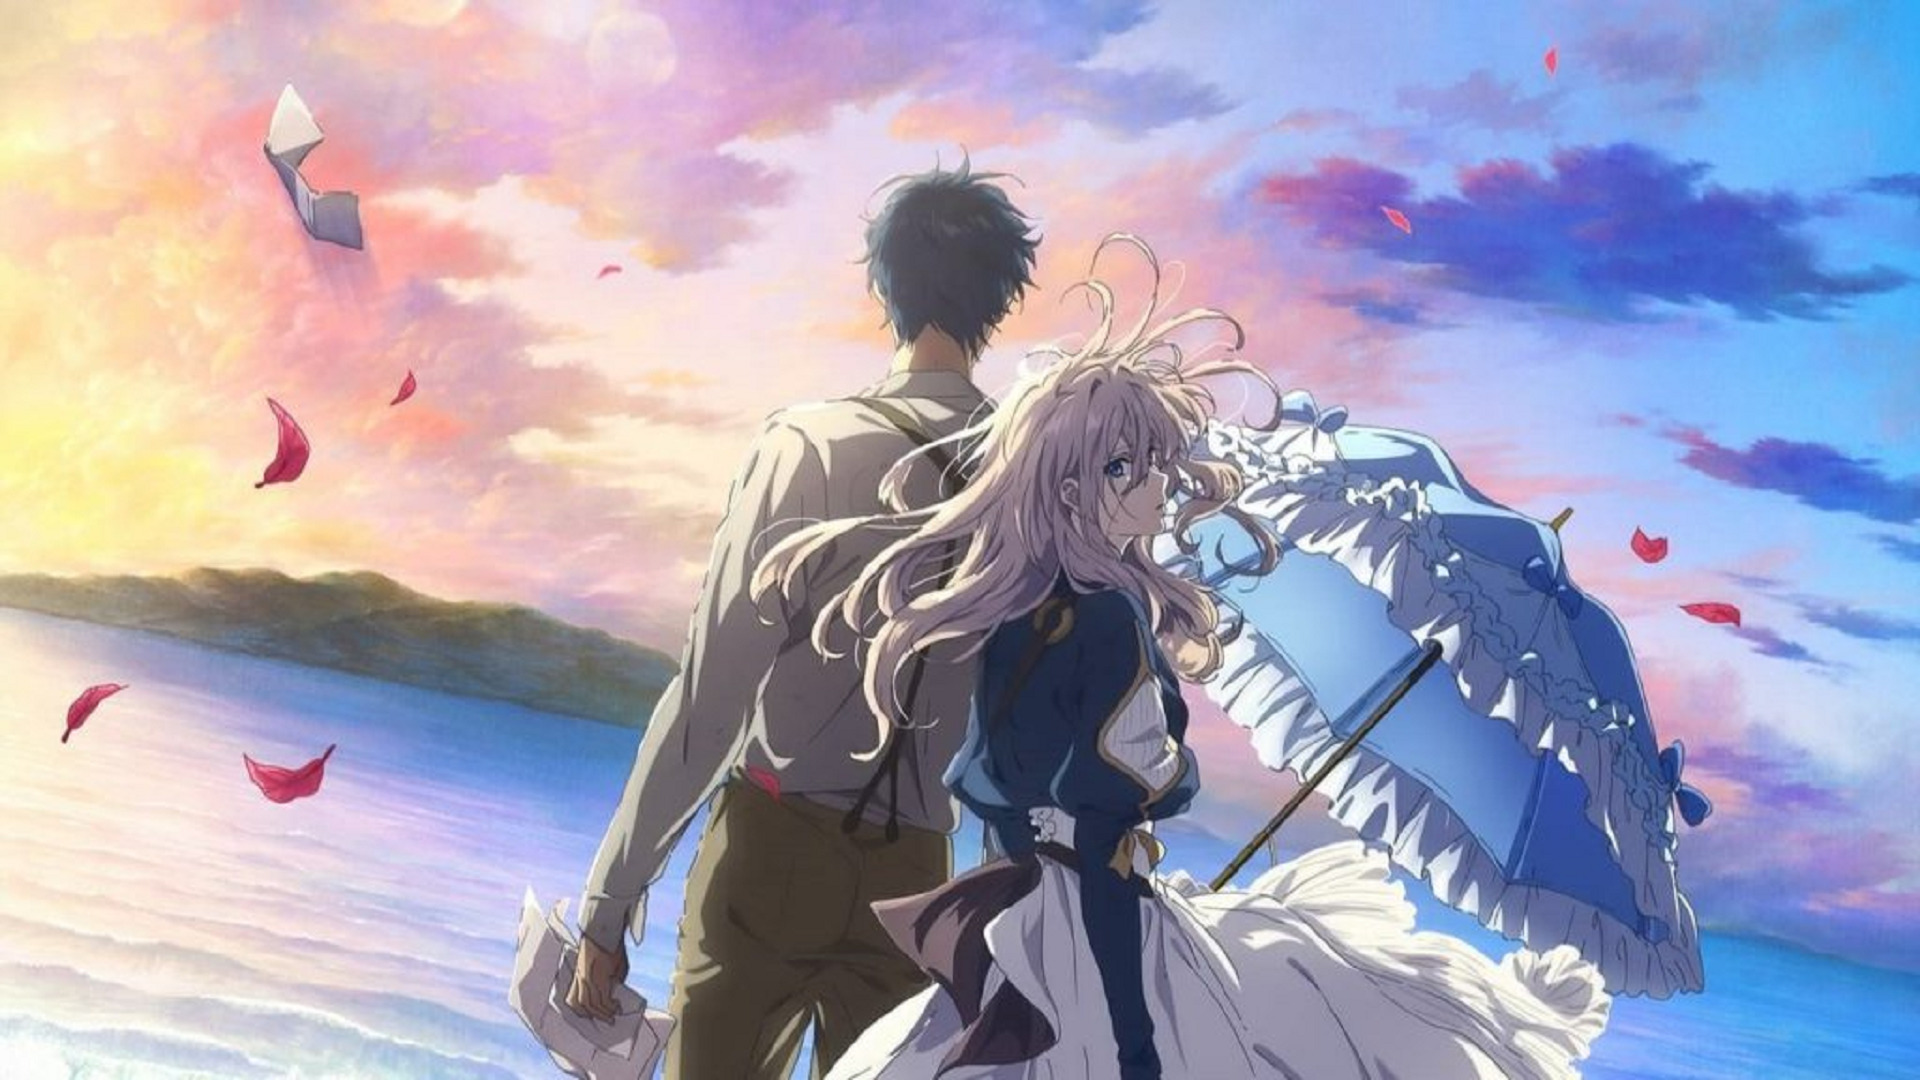 Violet Evergarden anime of the year